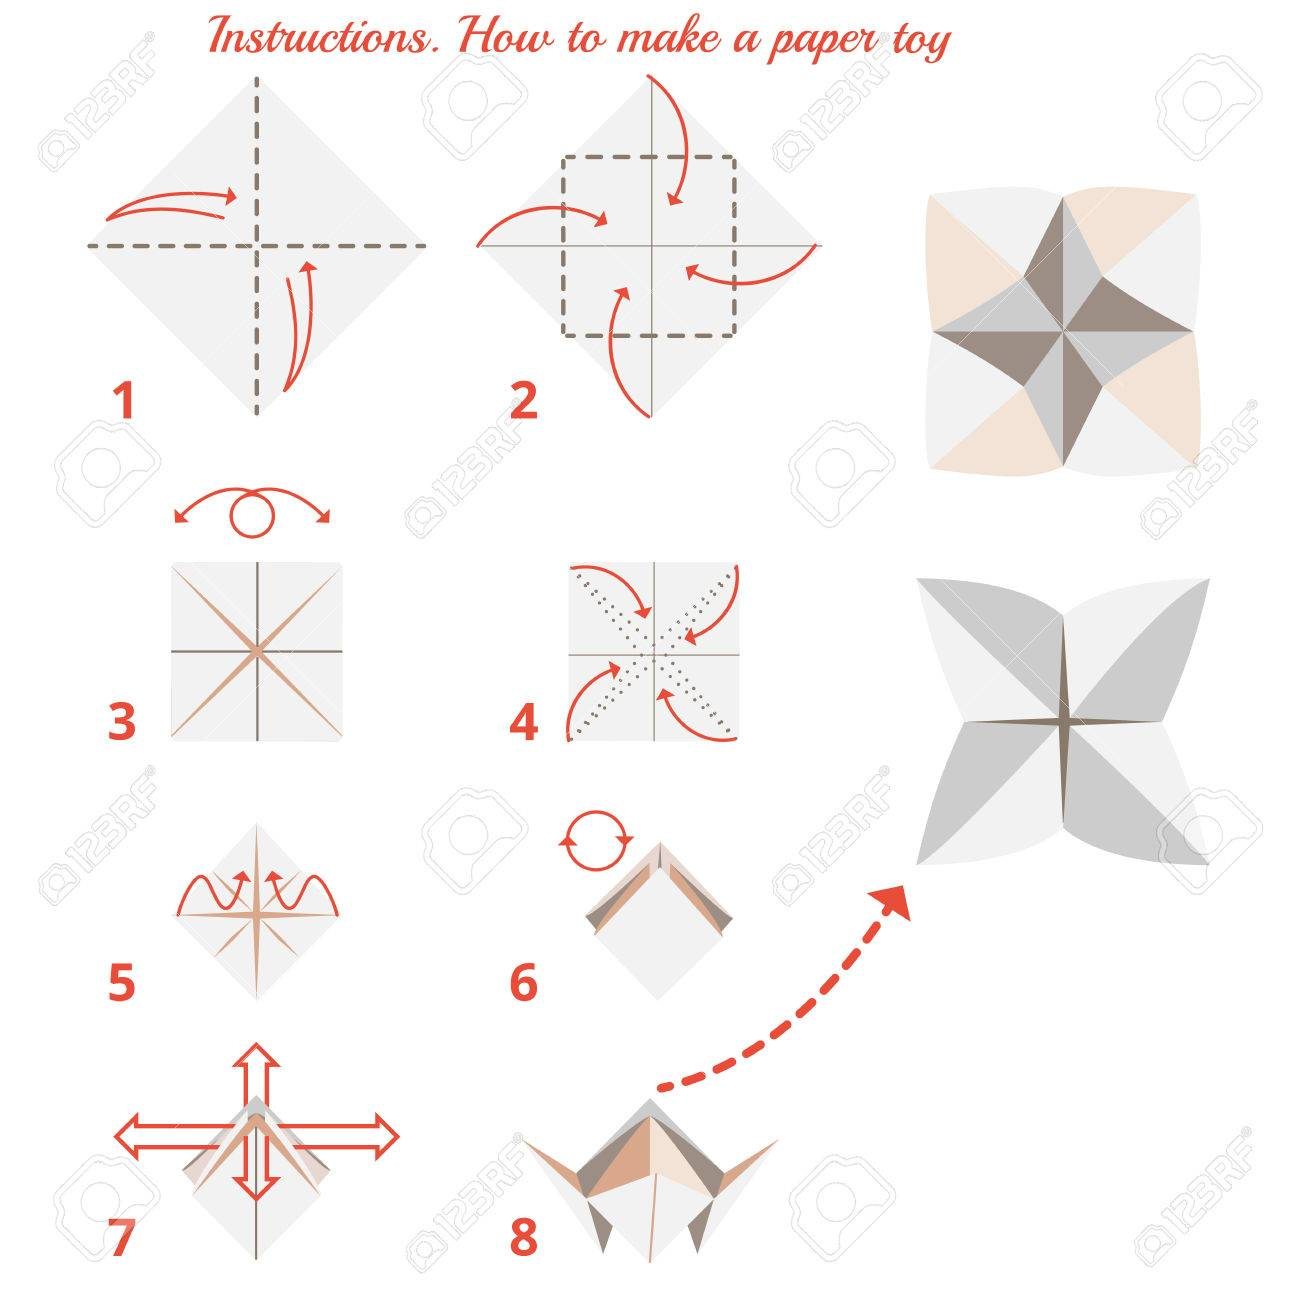 Instructions How To Make Paper Origami Toy Tutorial Step By Vector